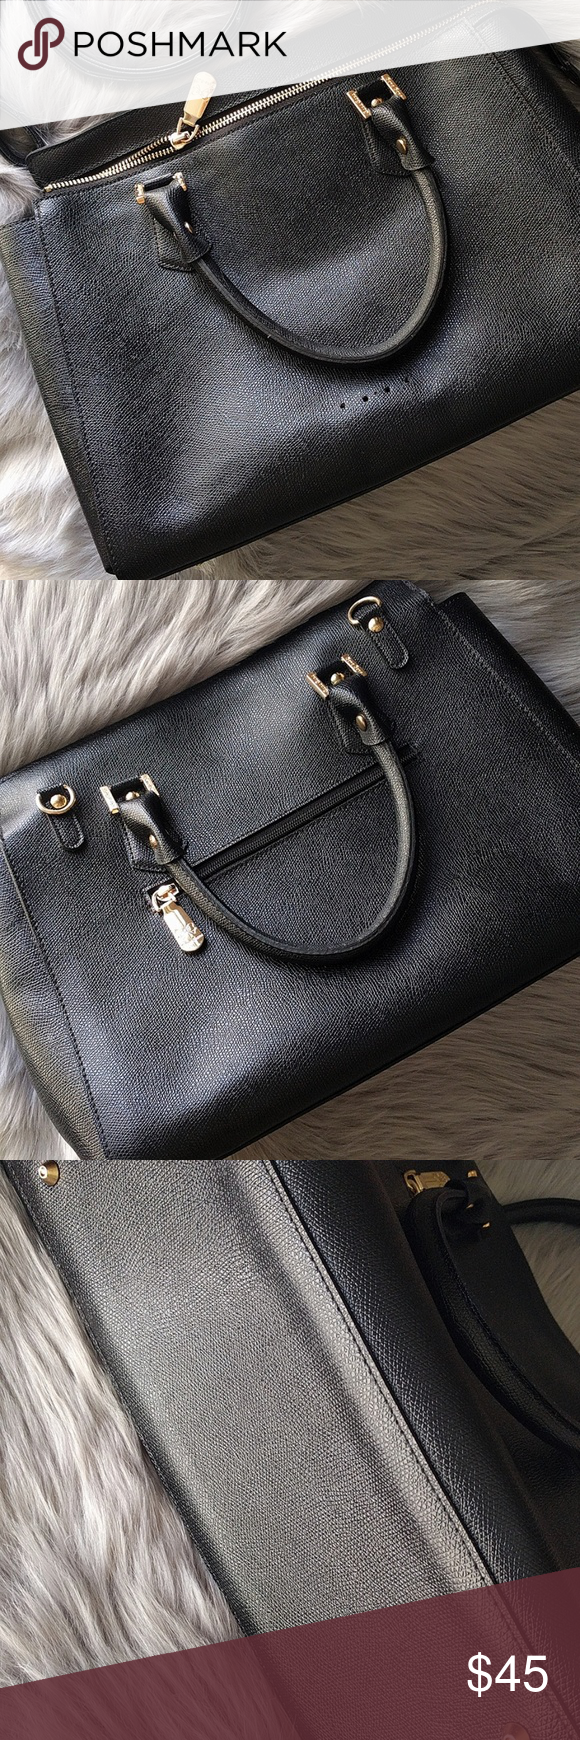 eadff09534 Bana Bana Black Handbag This amazing piece will take any outfit from day to  night!